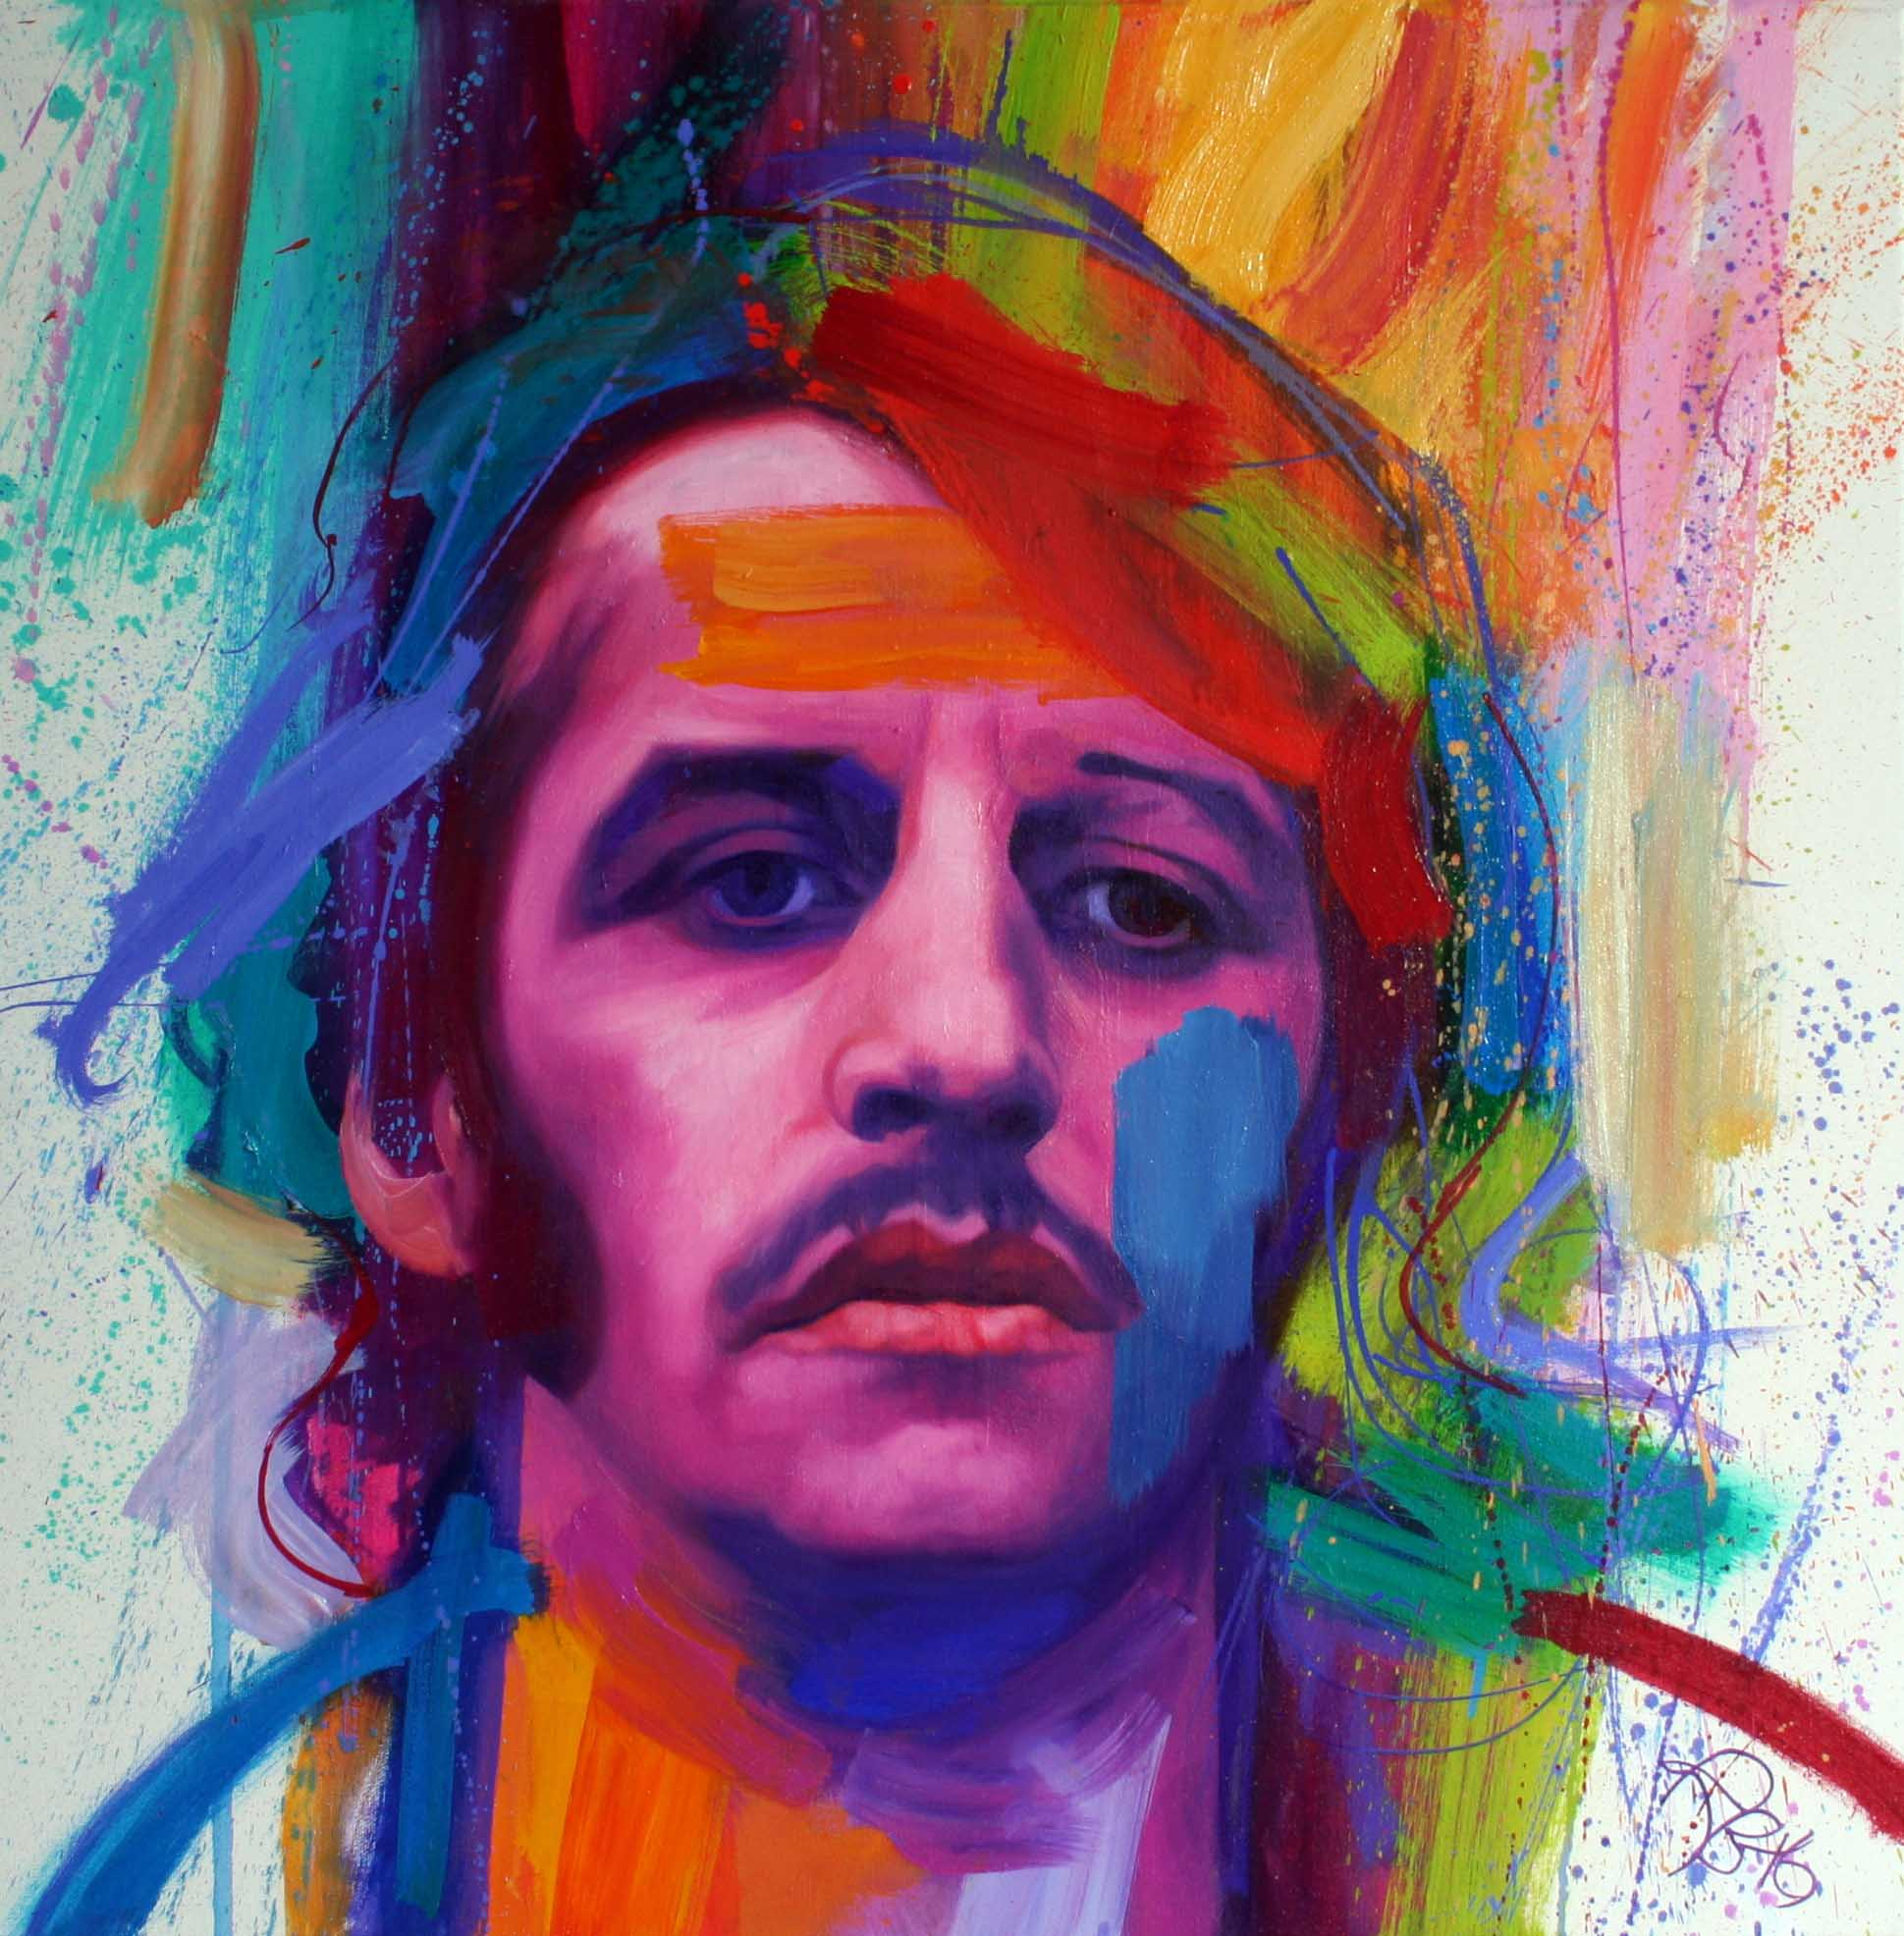 'Ringo'    Original Work now Sold.  Available as a Limited Edition Print on Canvas. Hand signed and numbered by the artist.